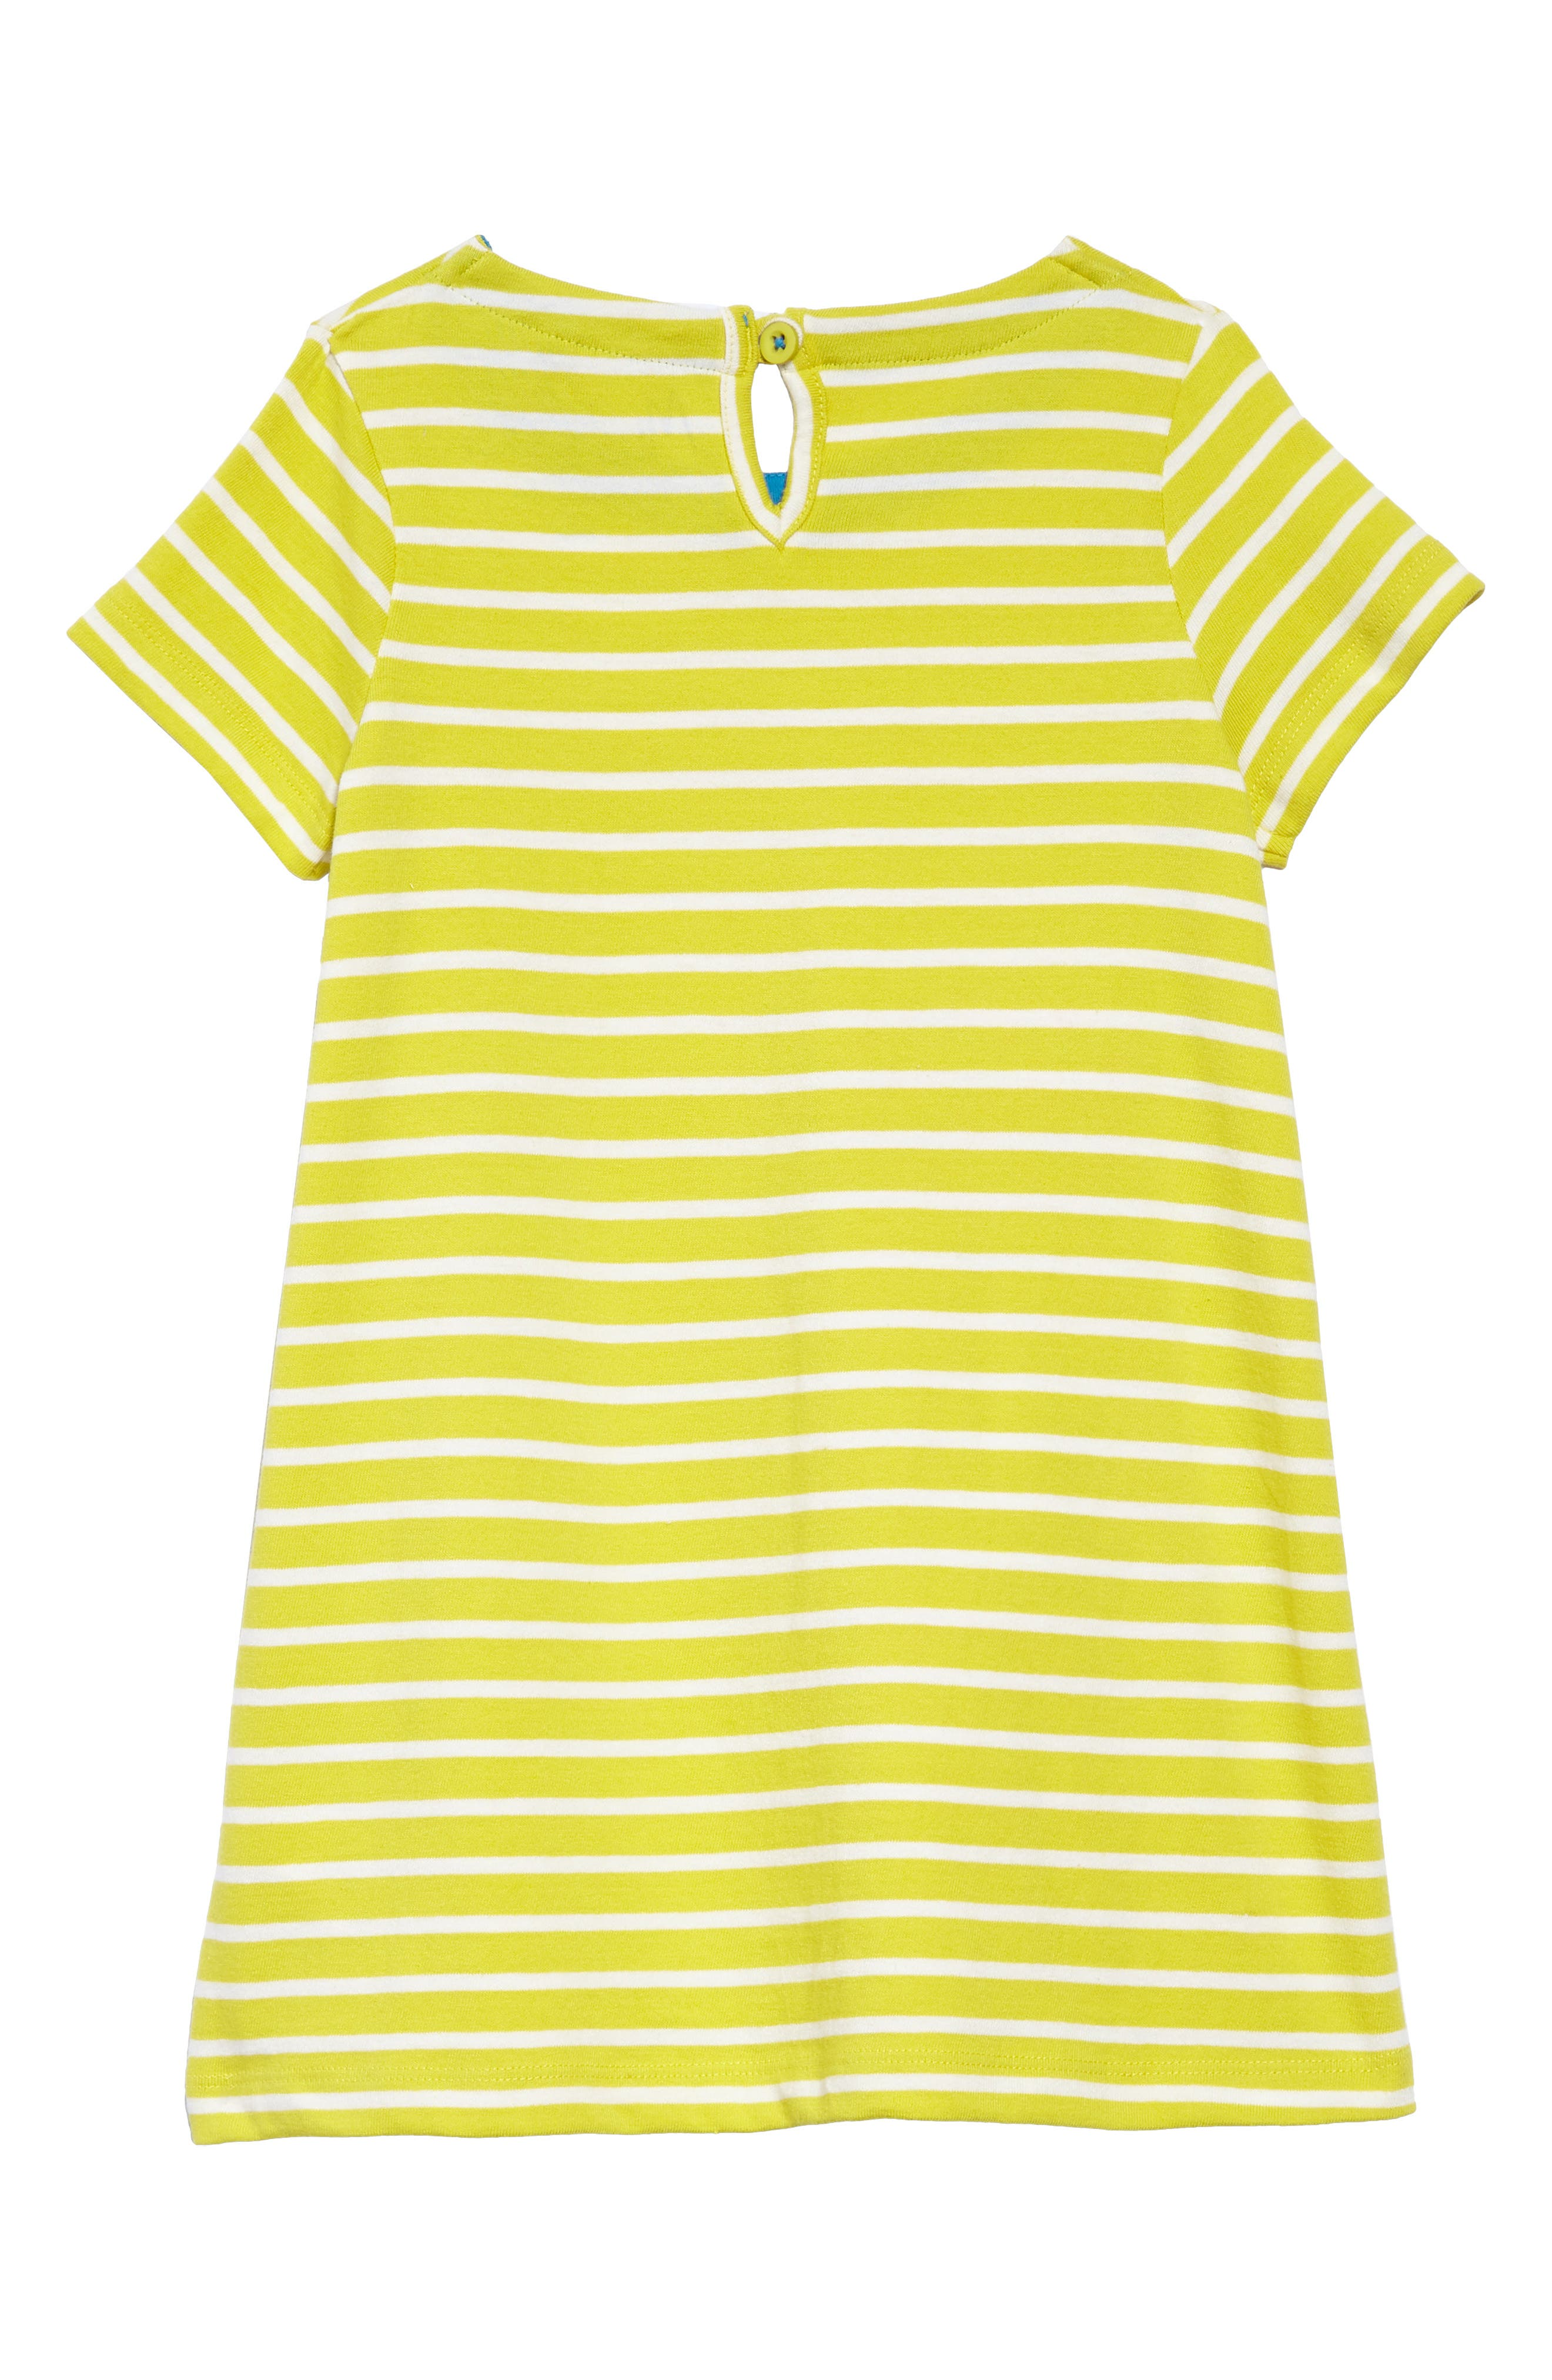 Dog Appliqué Striped Jersey Dress,                             Alternate thumbnail 2, color,                             Yelivory/ Zest Yellow Sprout